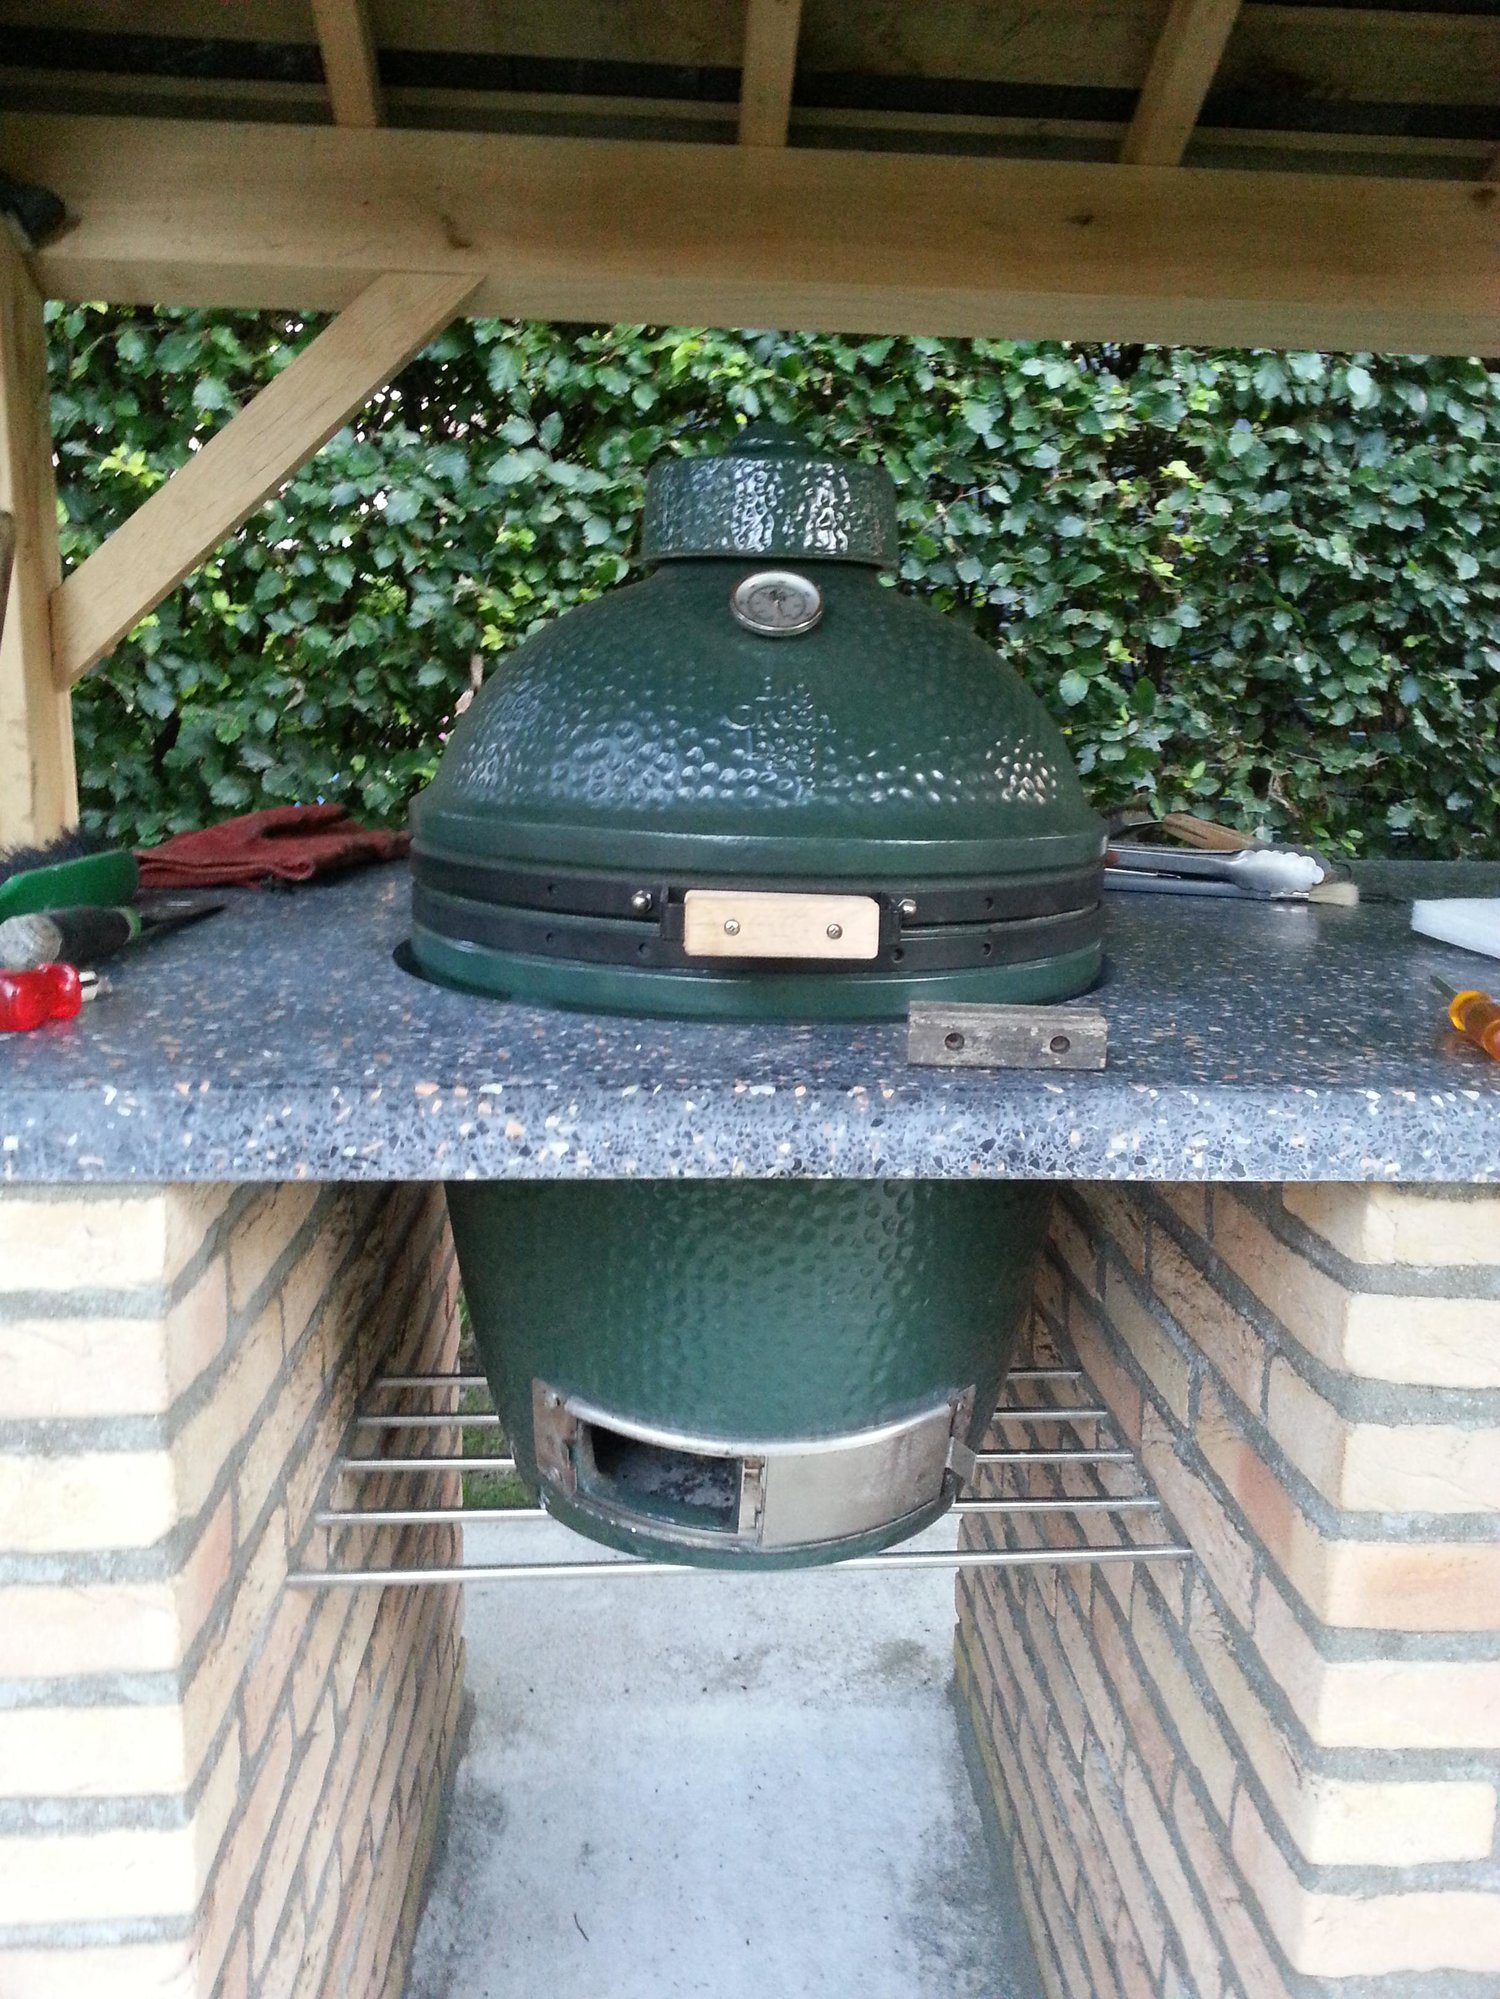 Outdoor kitchen with pizza oven and BGE — Big Green Egg ... on big green egg design, green egg small kitchen ideas, big green egg recipes, big green egg dinner,